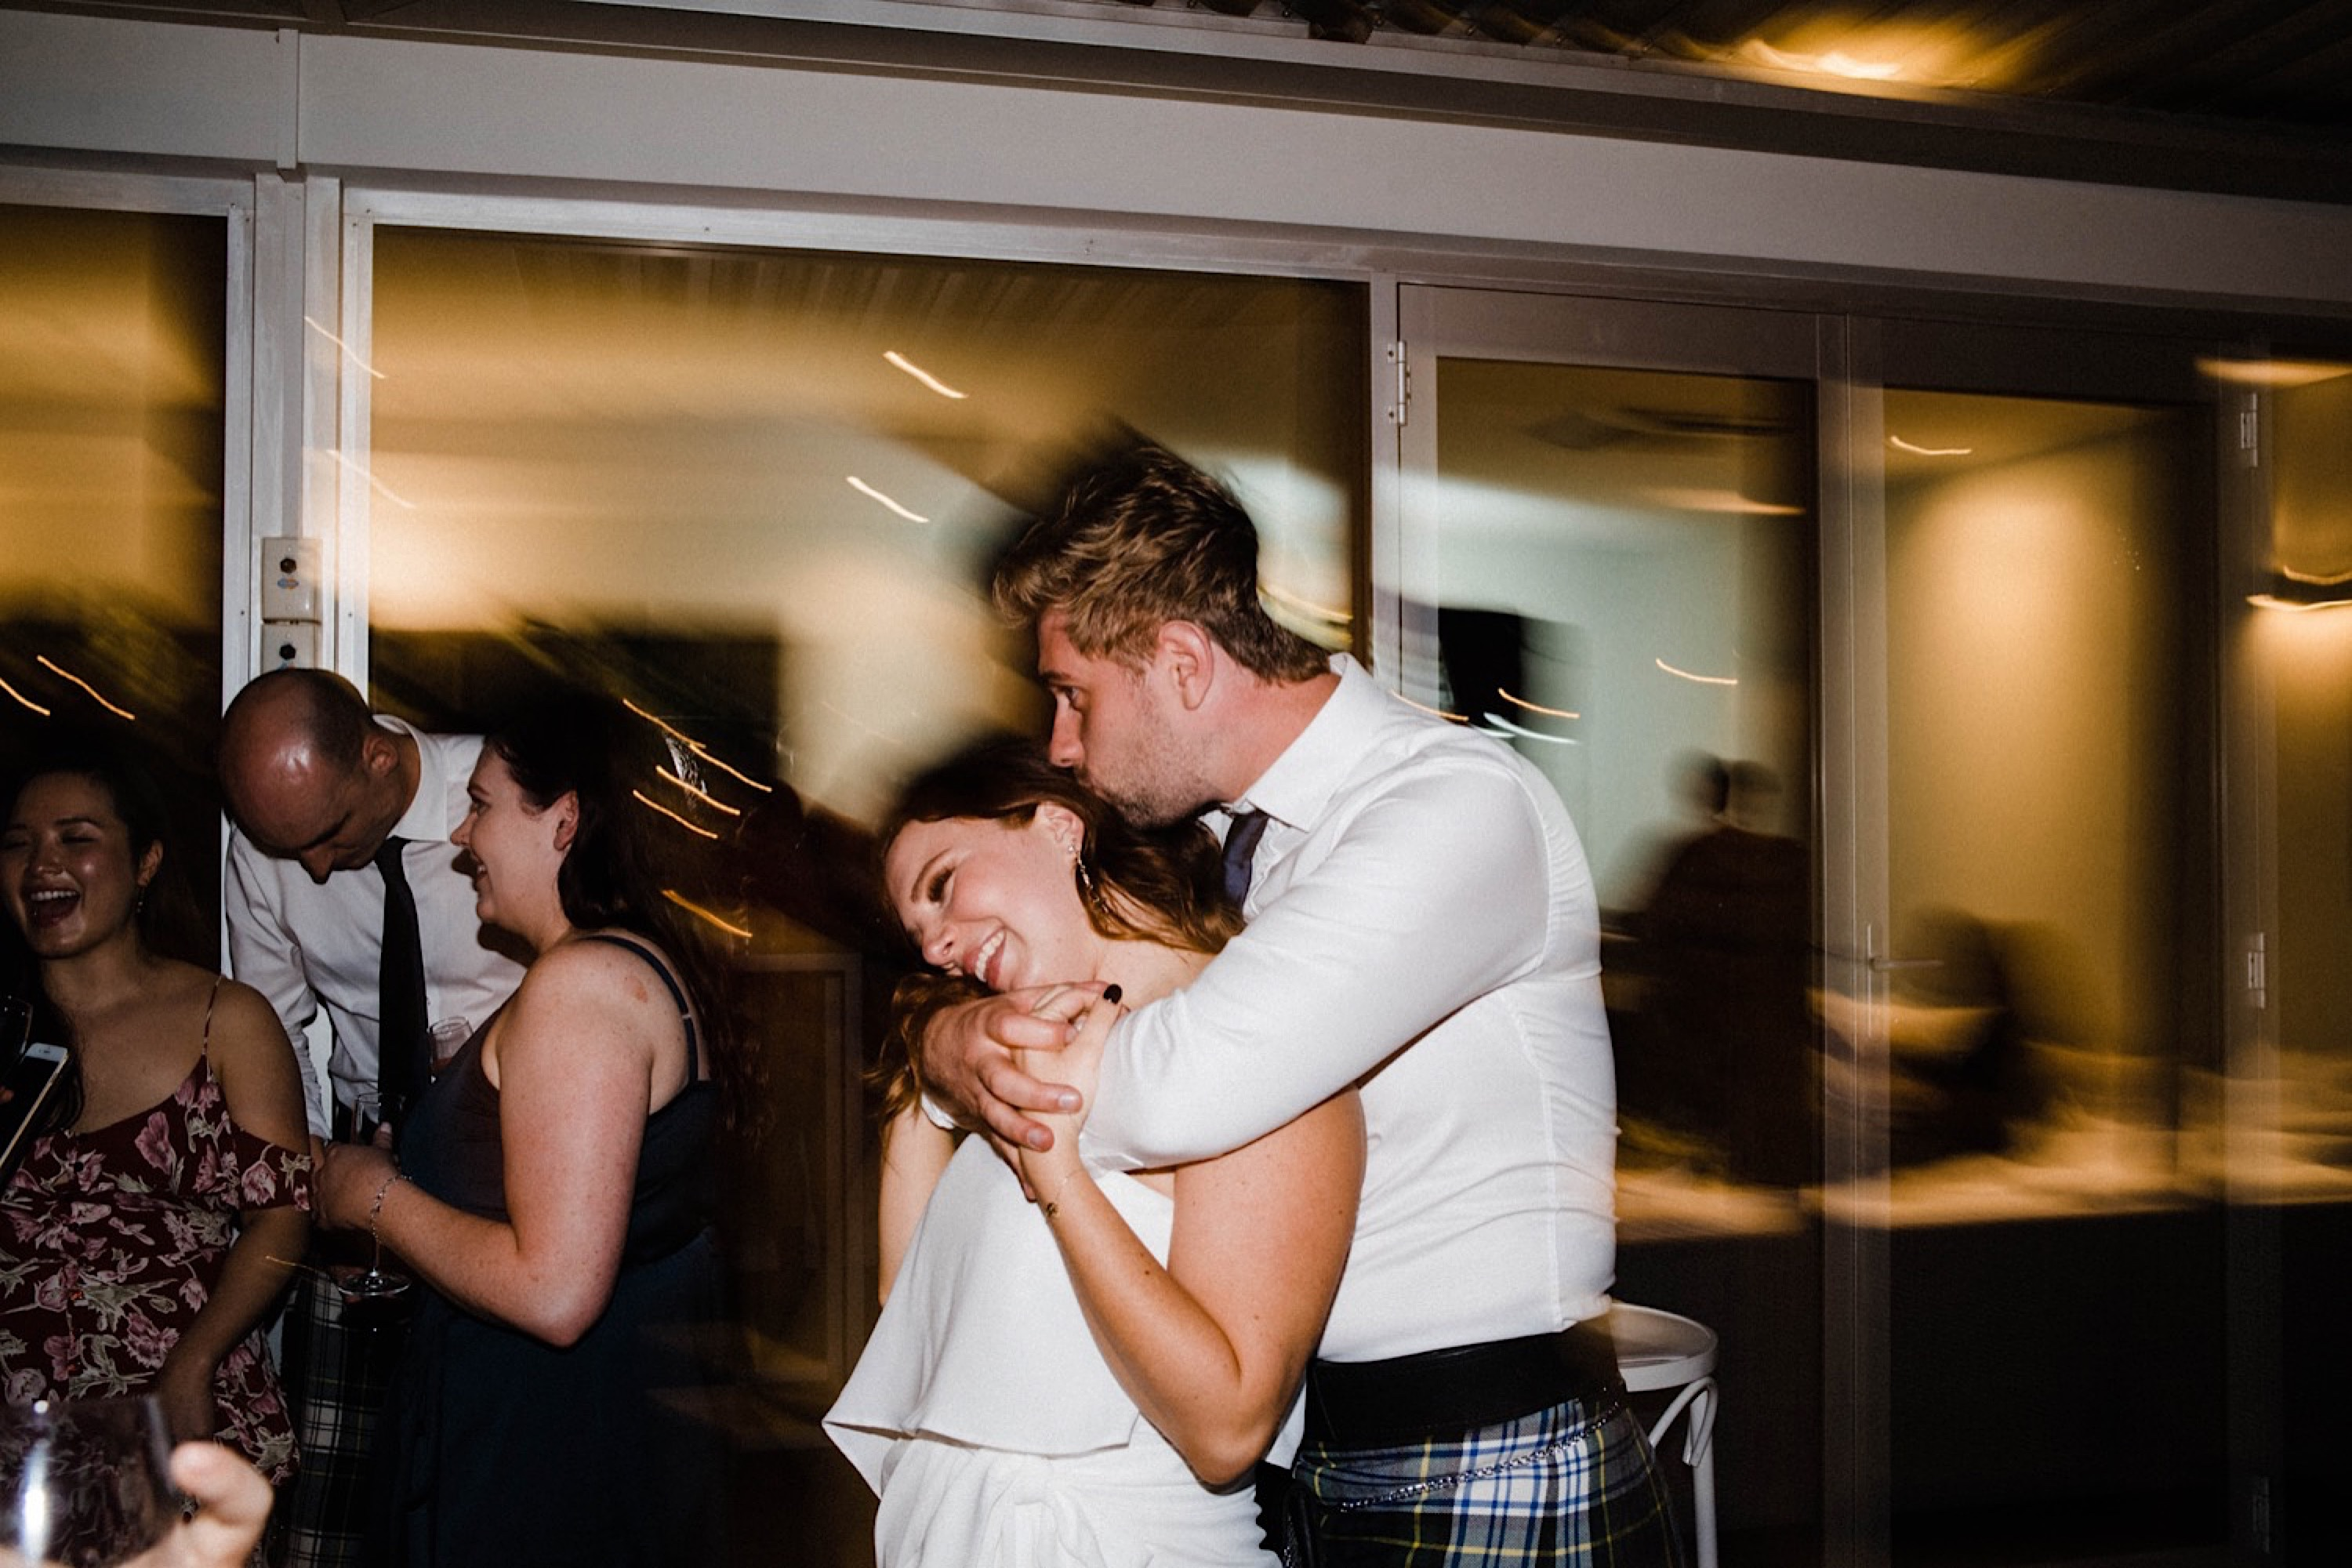 A wedding photo of a bride & groom dancing together at their Sustainable Backyard Wedding.